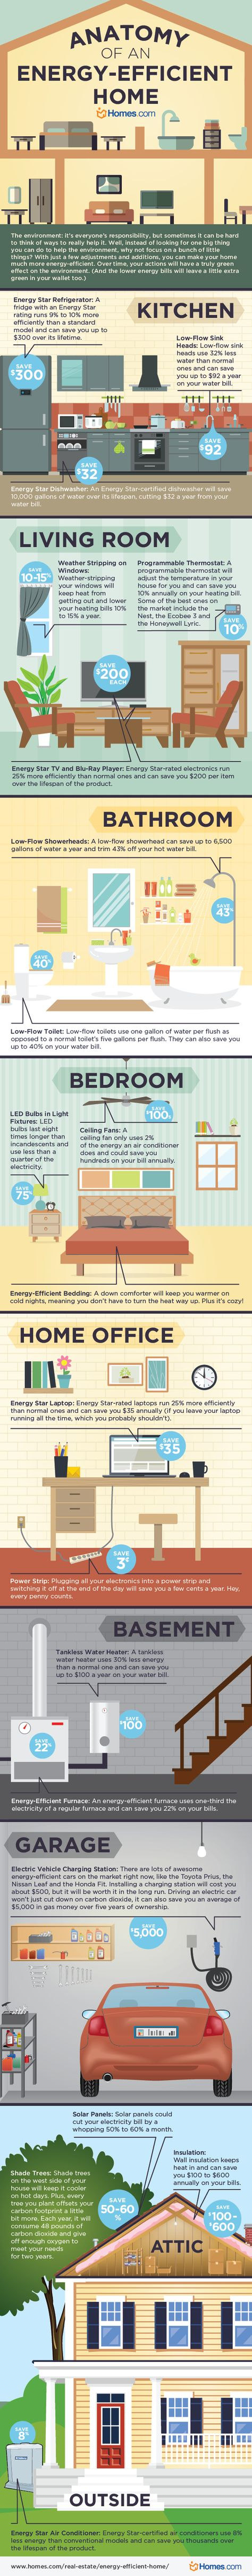 Thanks to @Homes.com for using our content to make this great infographic on energy efficient homes!